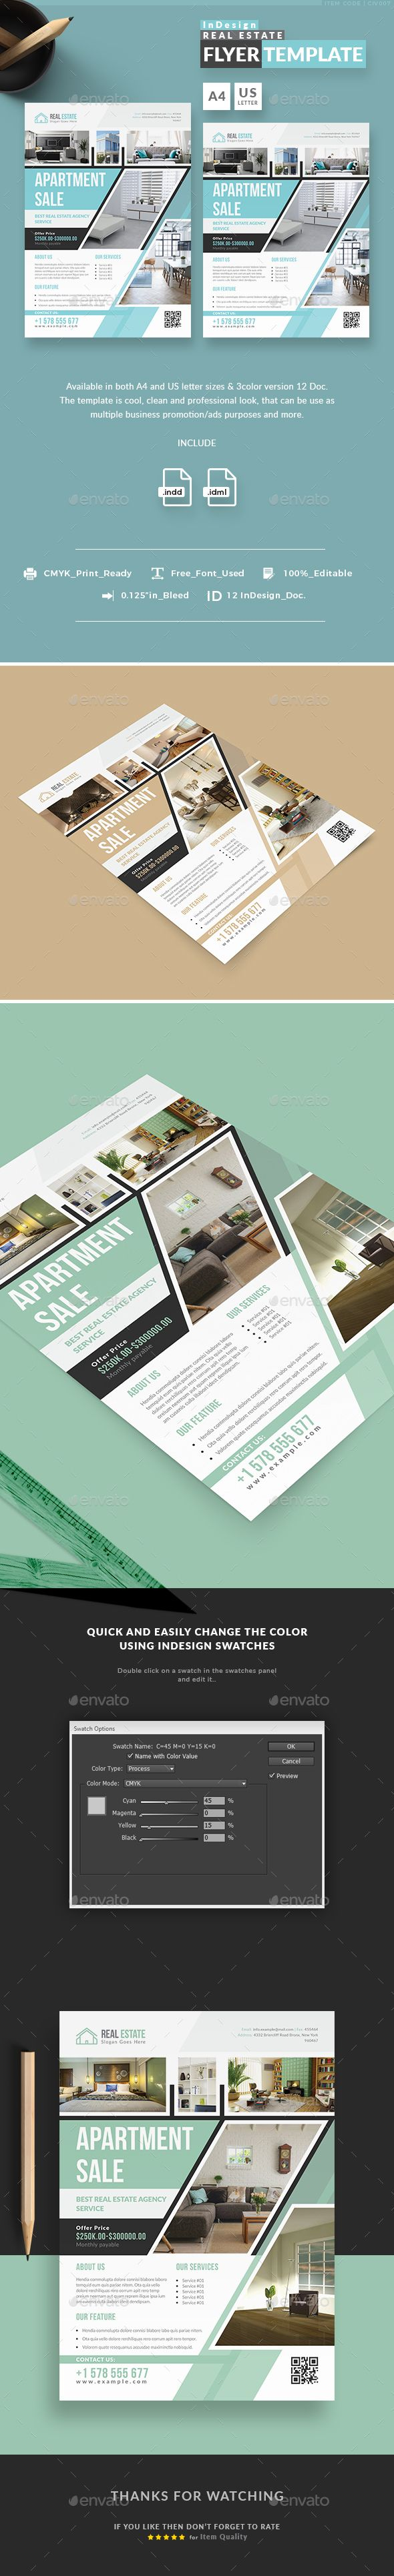 Real Estate InDesign Flyer Templates InDesign INDD - A4 and US Letter Size